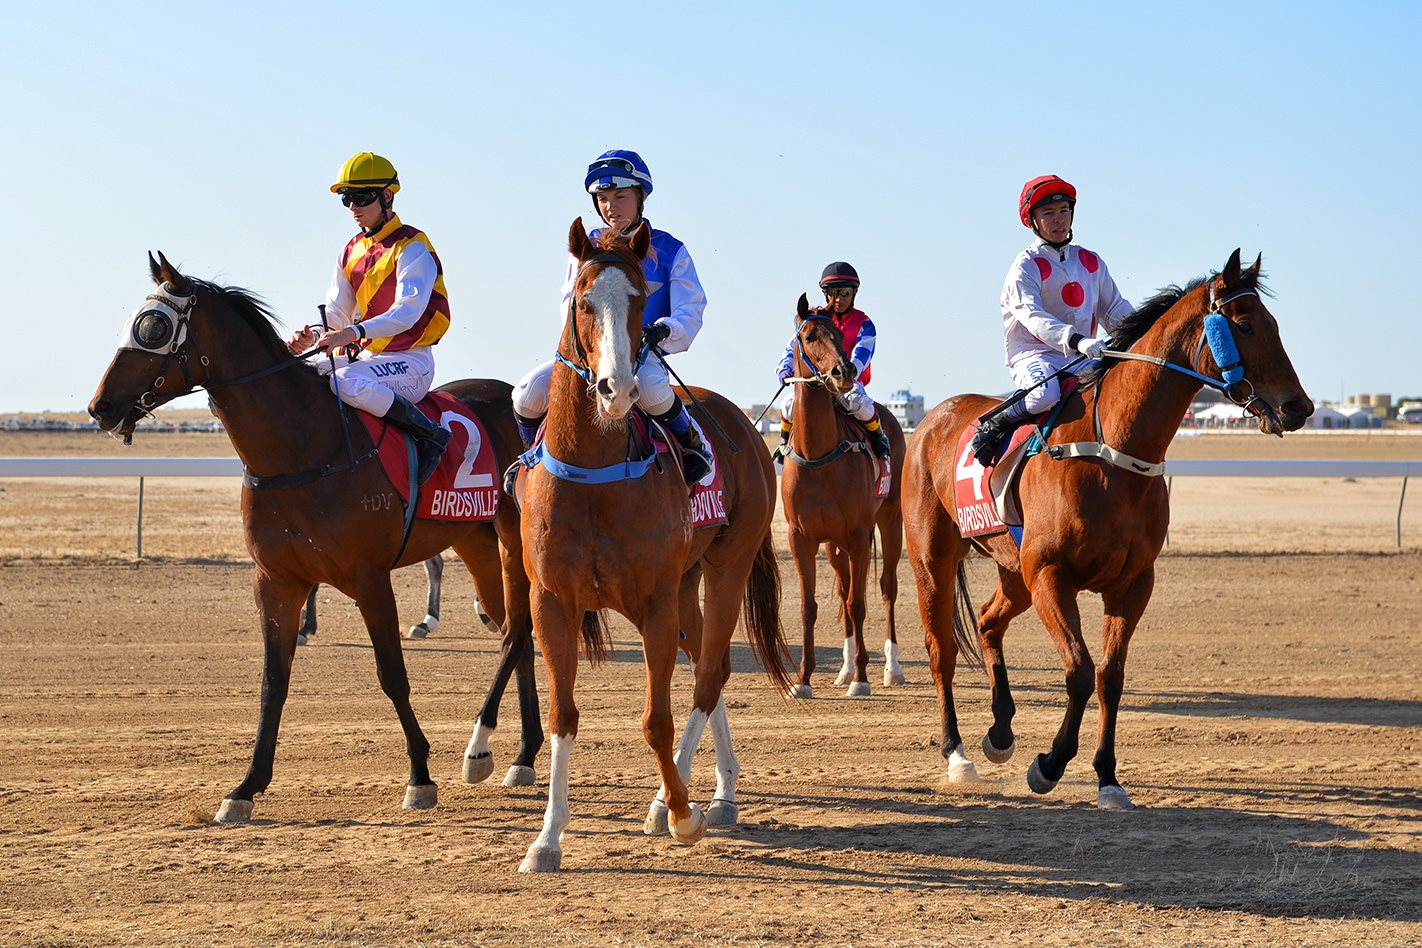 Horses at Birdsville Races